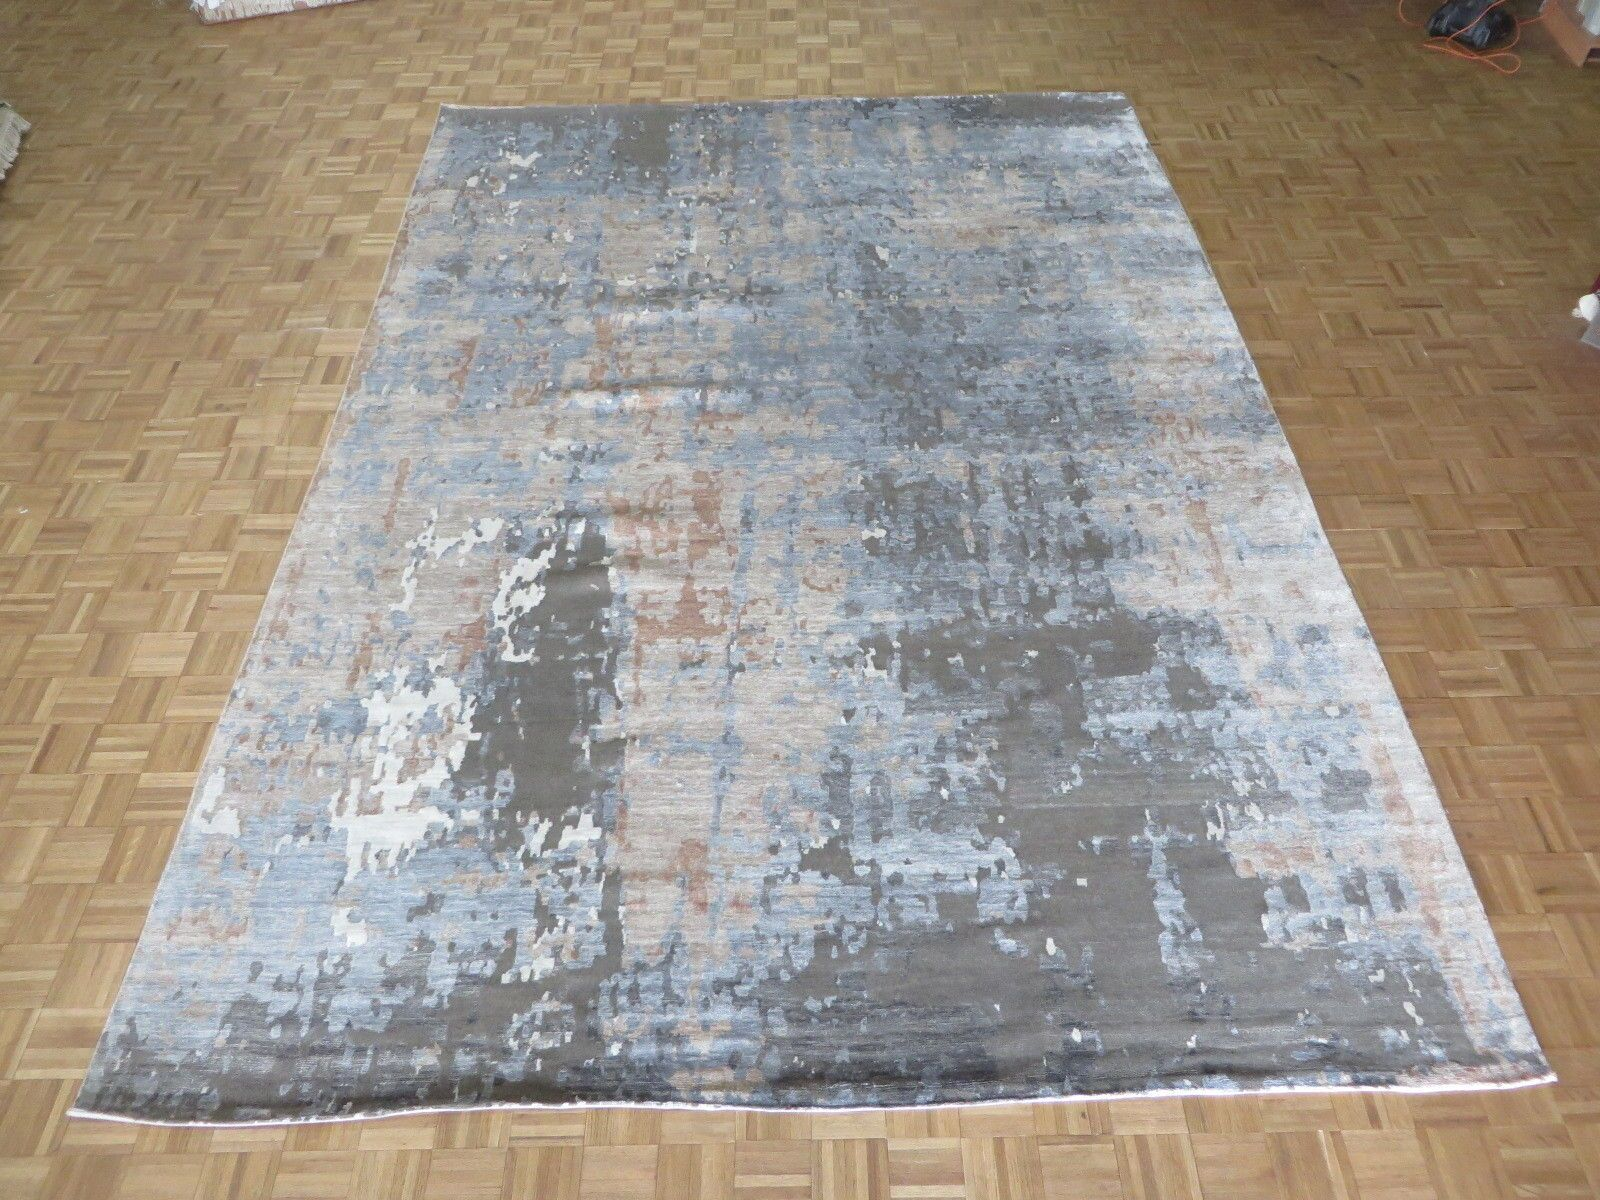 One-of-a-Kind Crest Lane Modern Abstract Hand-Knotted Brown/Gray Area Rug Rug Size: Rectangle 8'11